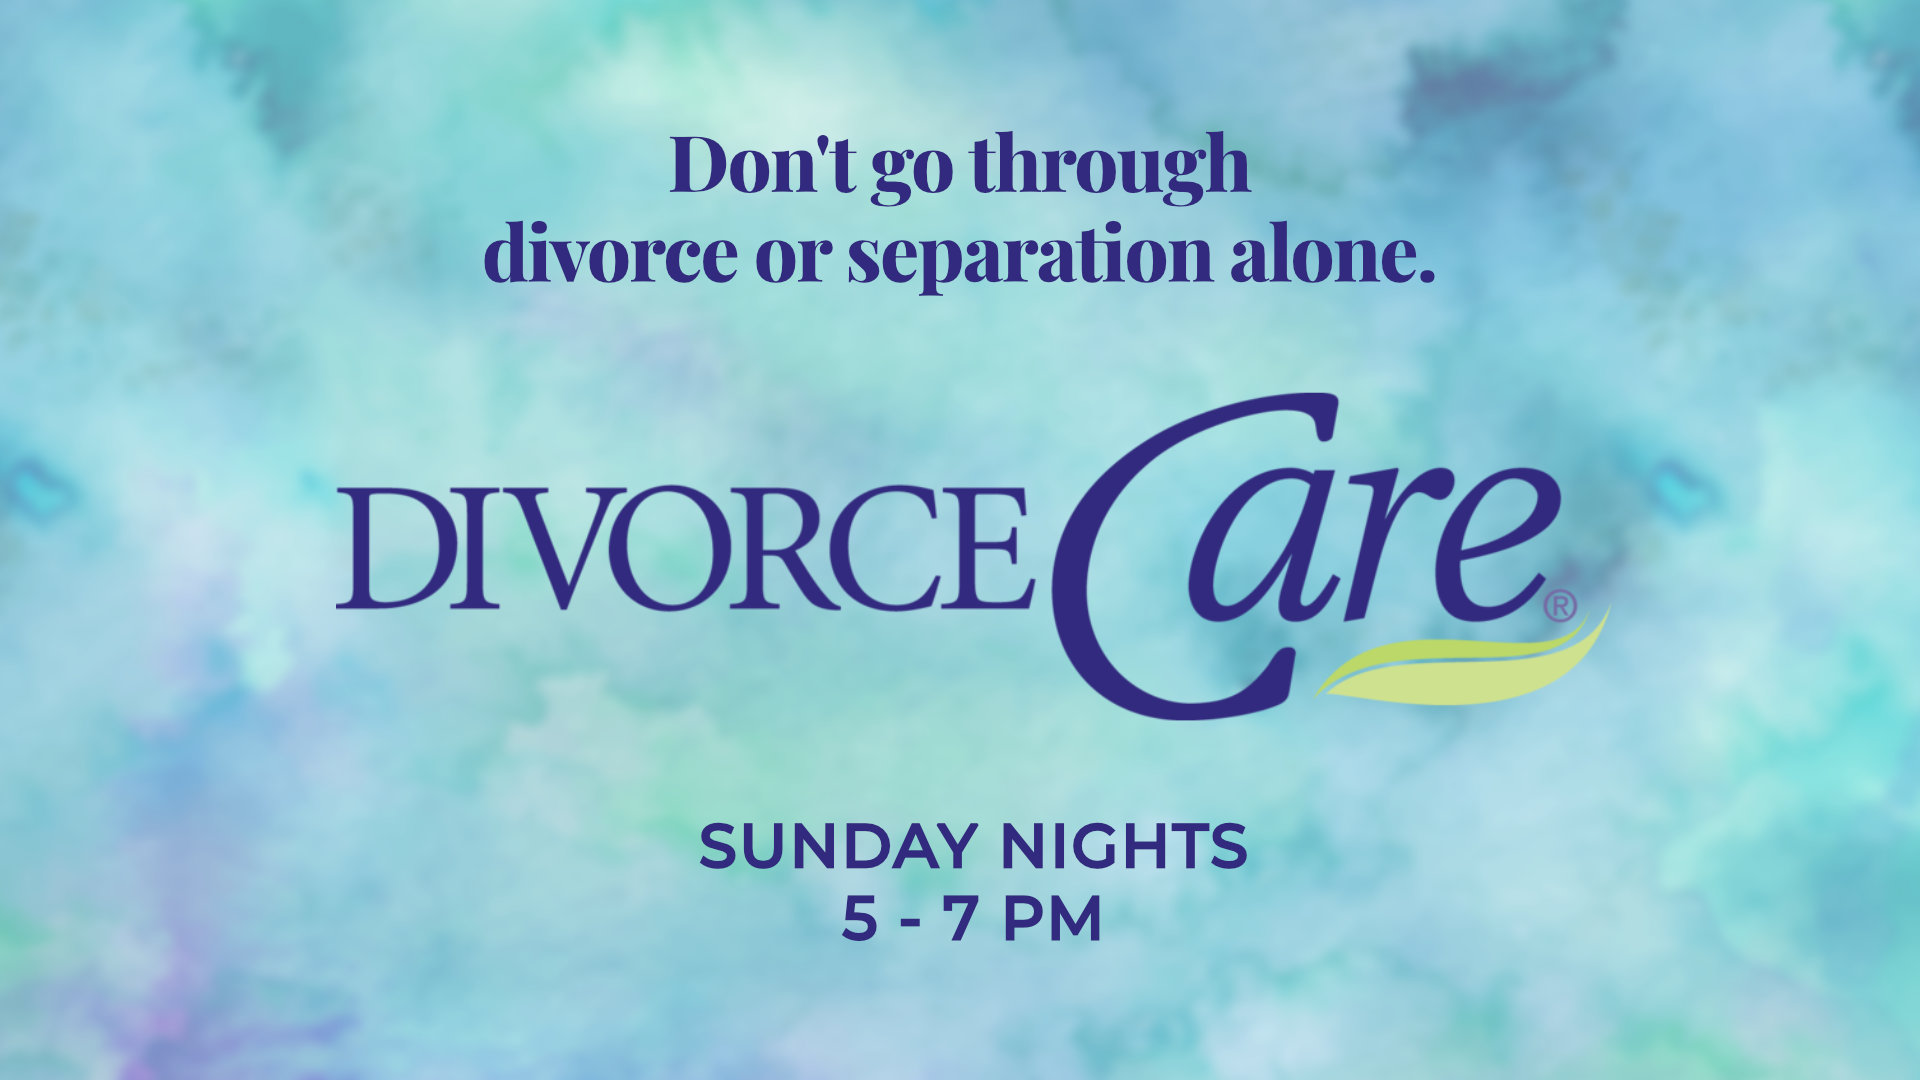 Don't go through divorce or separation alone. DivorceCare - Sunday nights 5-7 PM